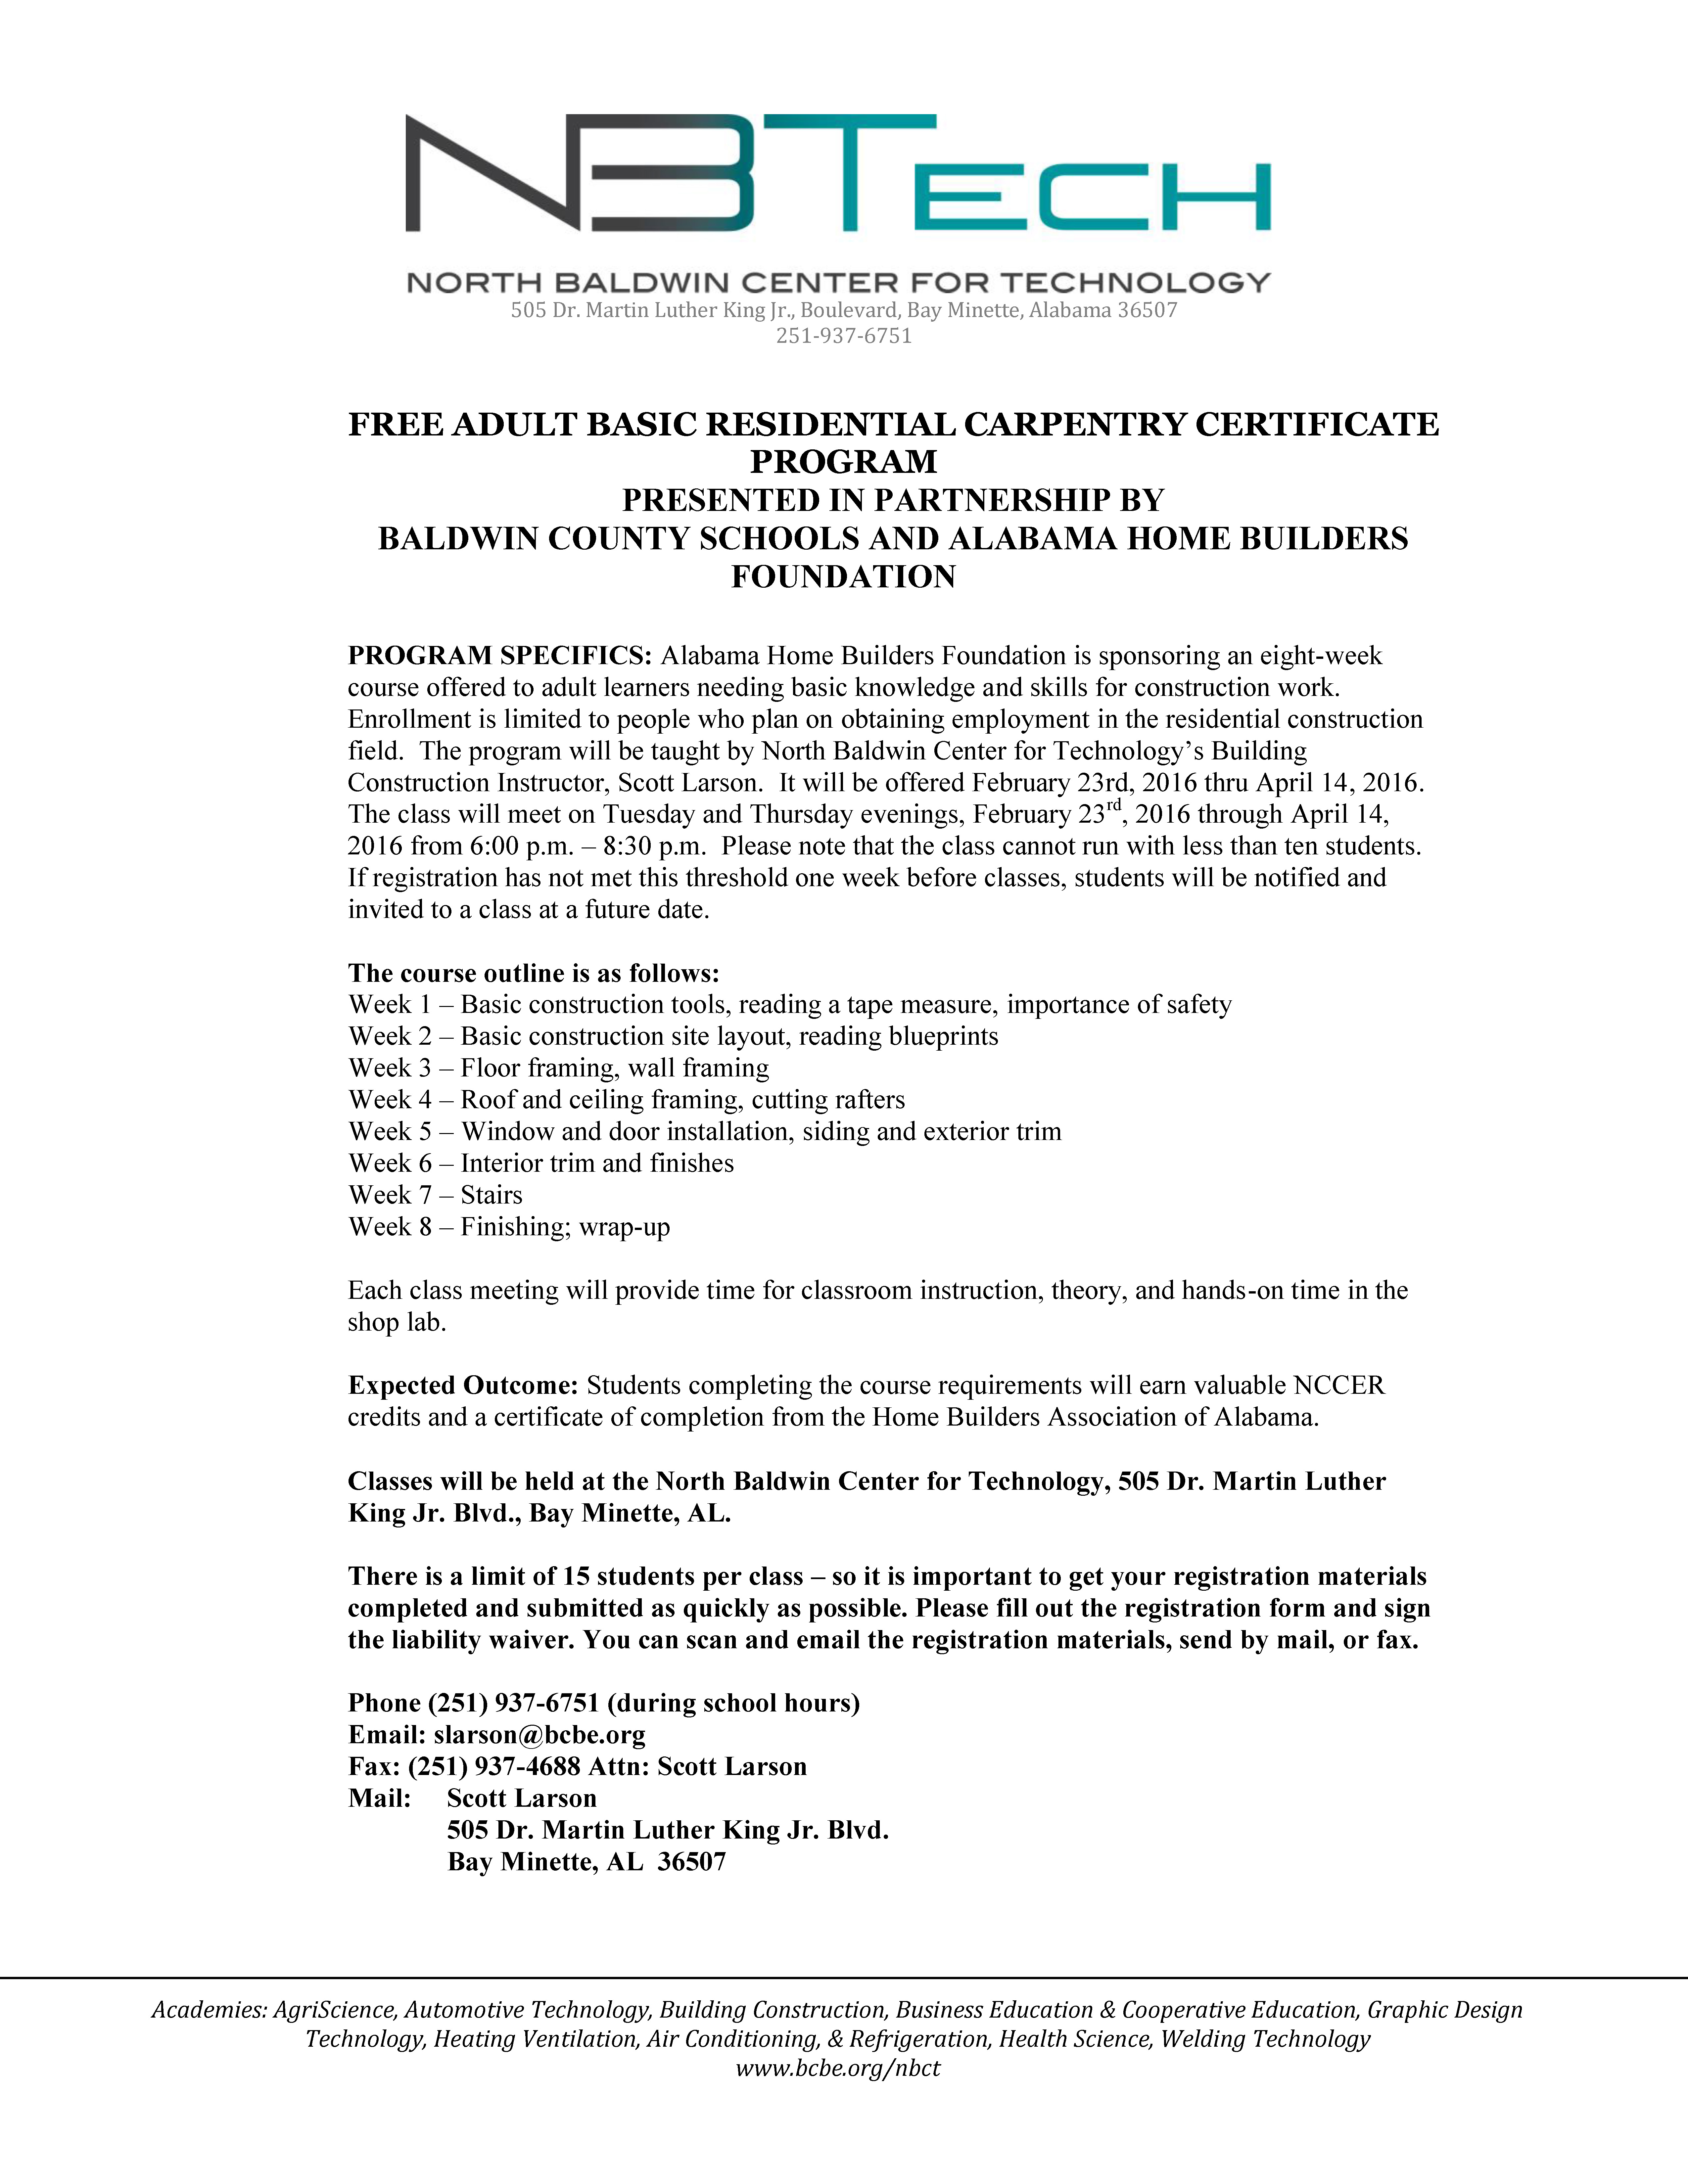 Free adult basic carpentry certificate program now available malvernweather Images